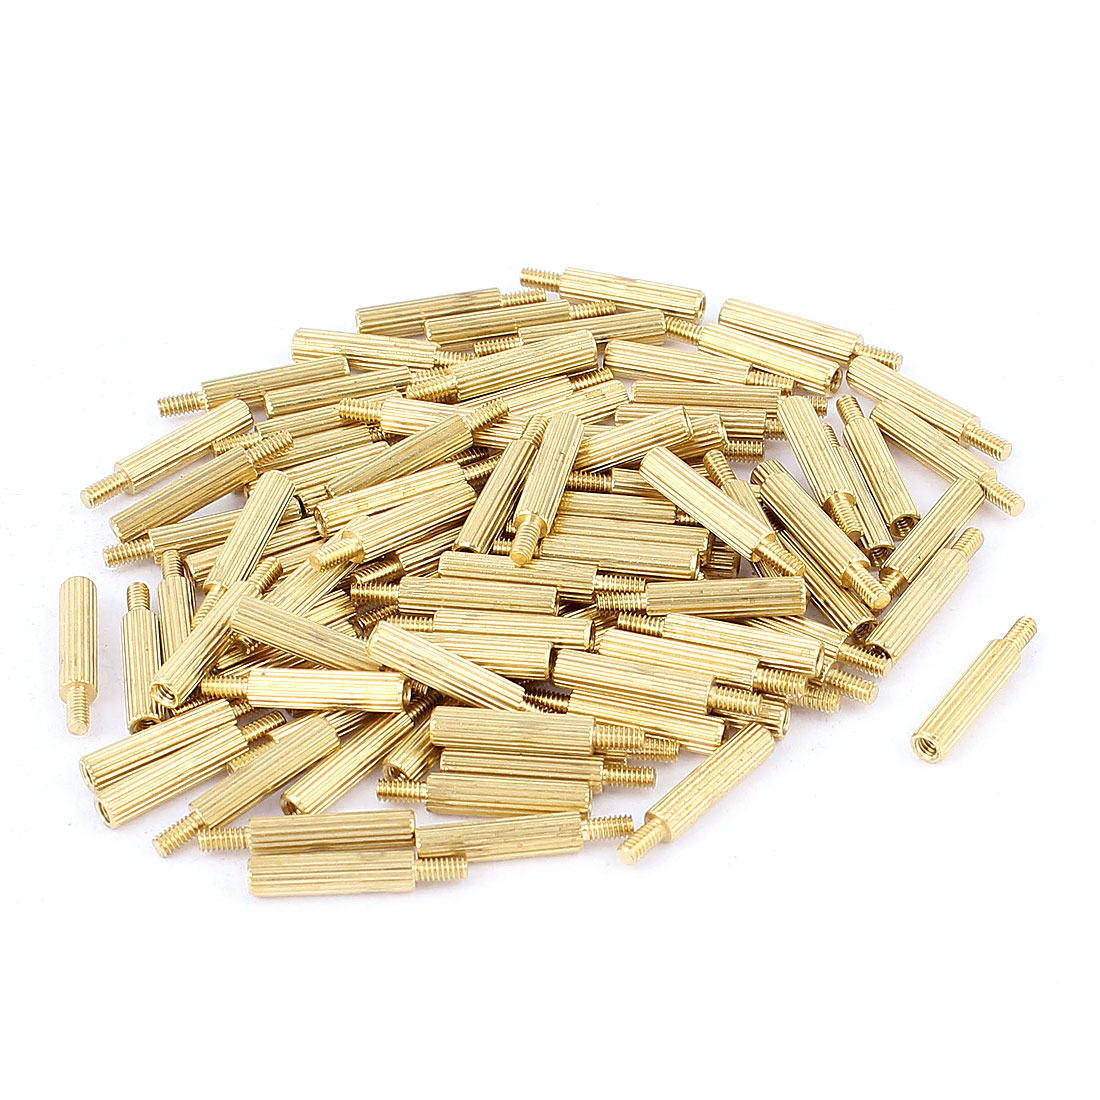 100pcs M2 13mm+4mm Female to Male Knurling Brass Standoff Spacer Pillar for PCB Motherboard